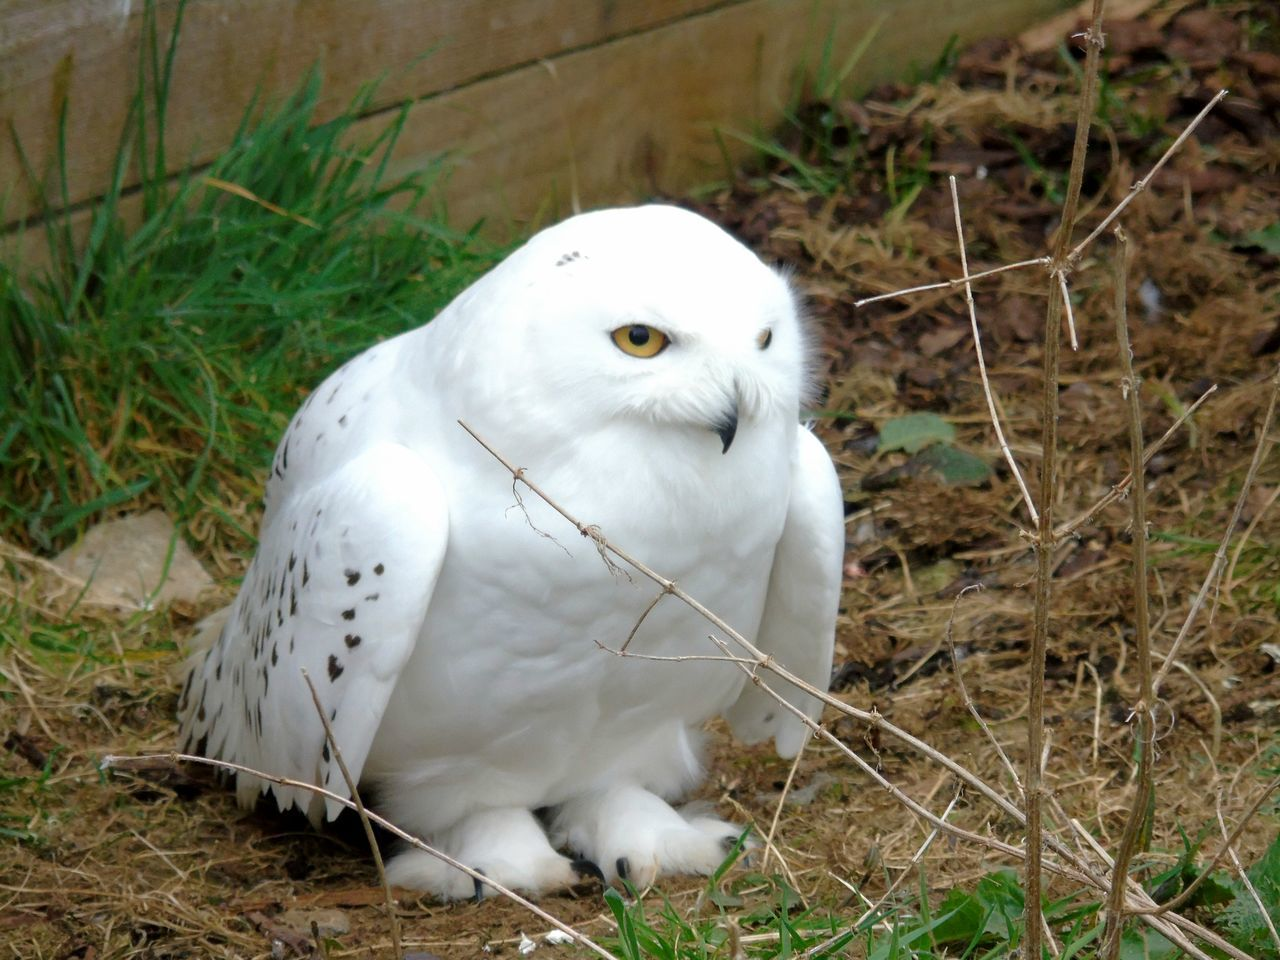 Snowy Owl Uk Eye Em Scotland Scotland Kincraig Wildlife Park Snowy Owls Snowy Owl Beauty In Nature Owl Photography Owls Beautiful Animals  Backgrounds Animal Themes Bird Animals In The Wild Close-up Perching Outdoors Owl Nature Animal_collection Animal Wildlife Wildlife Photography Wildlife Photos Portrait